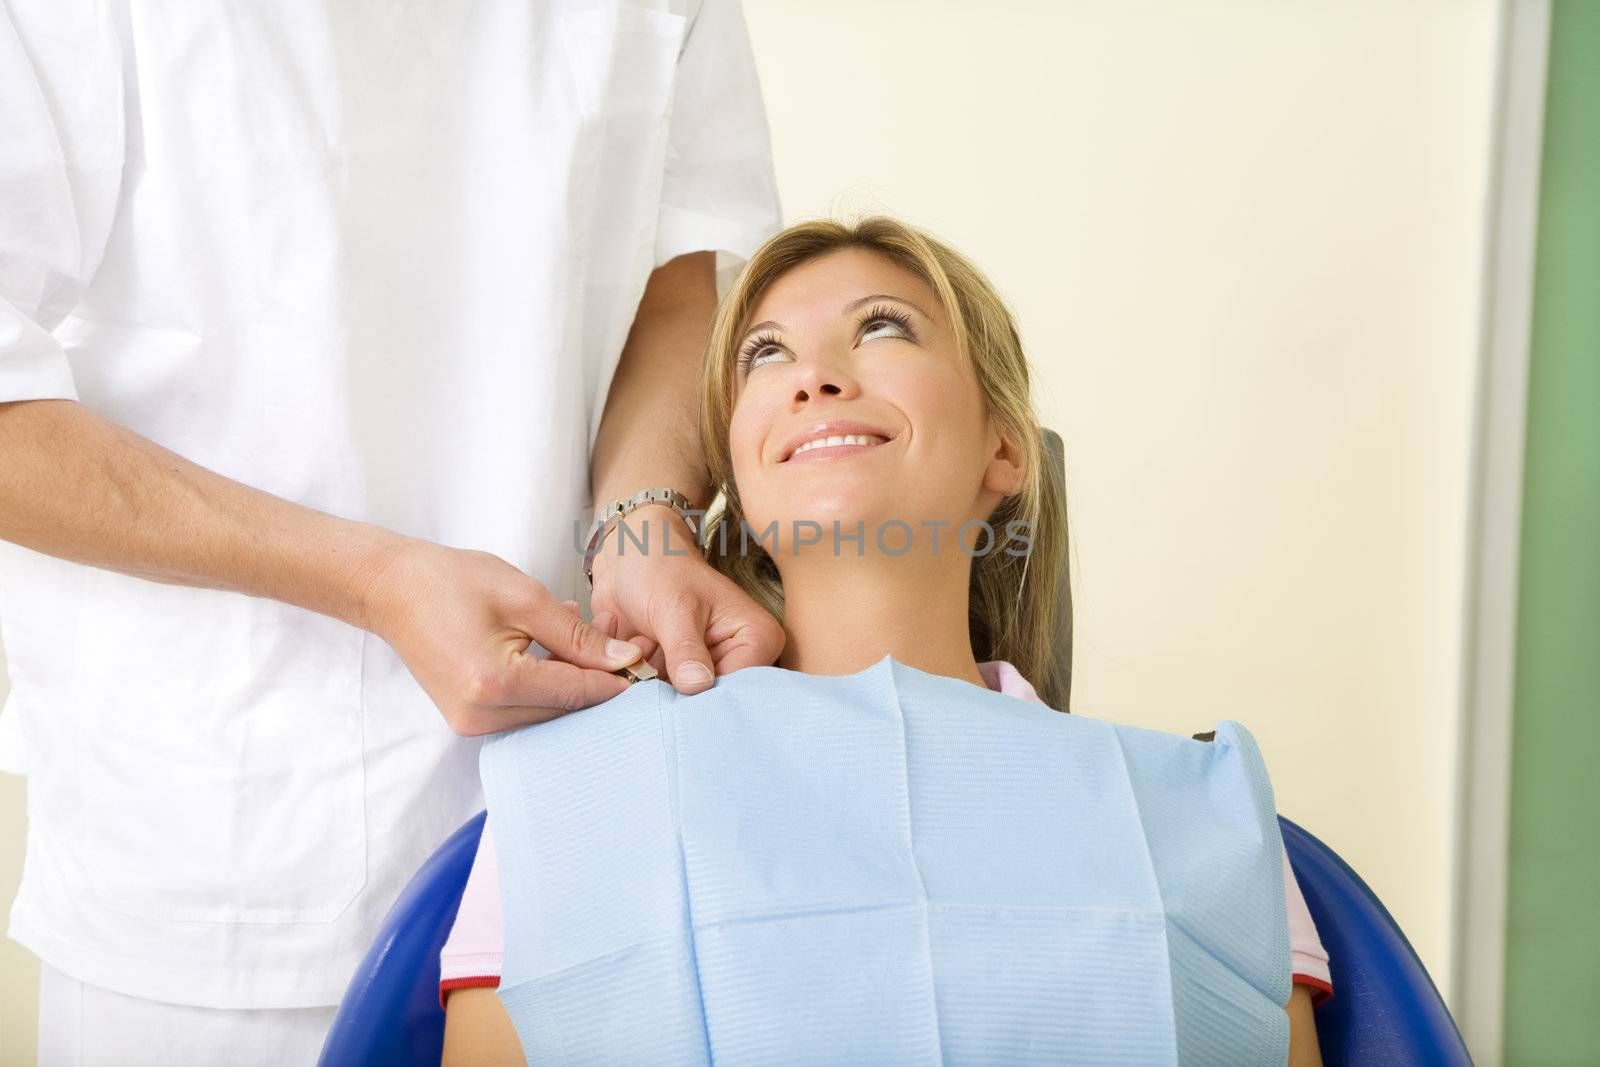 dentist and his patient in examination room. Copy space